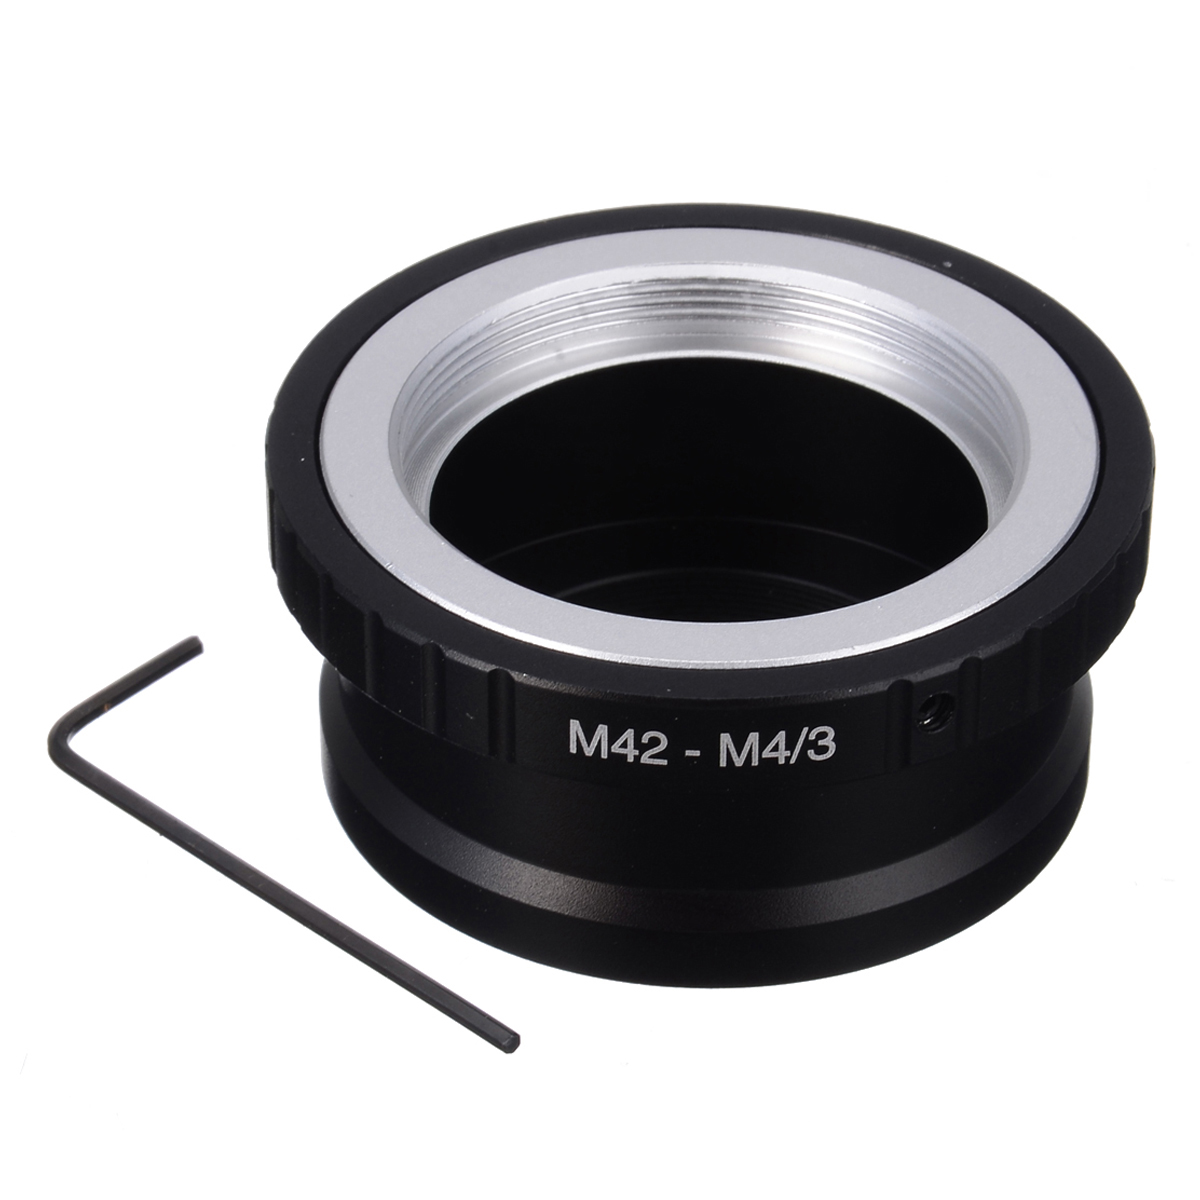 Adapter Ring for M42 Lens to Micro 4/3 Mount Camera Lens Adapte for Olympus for Panasonic DSLR Cameras Accessories image